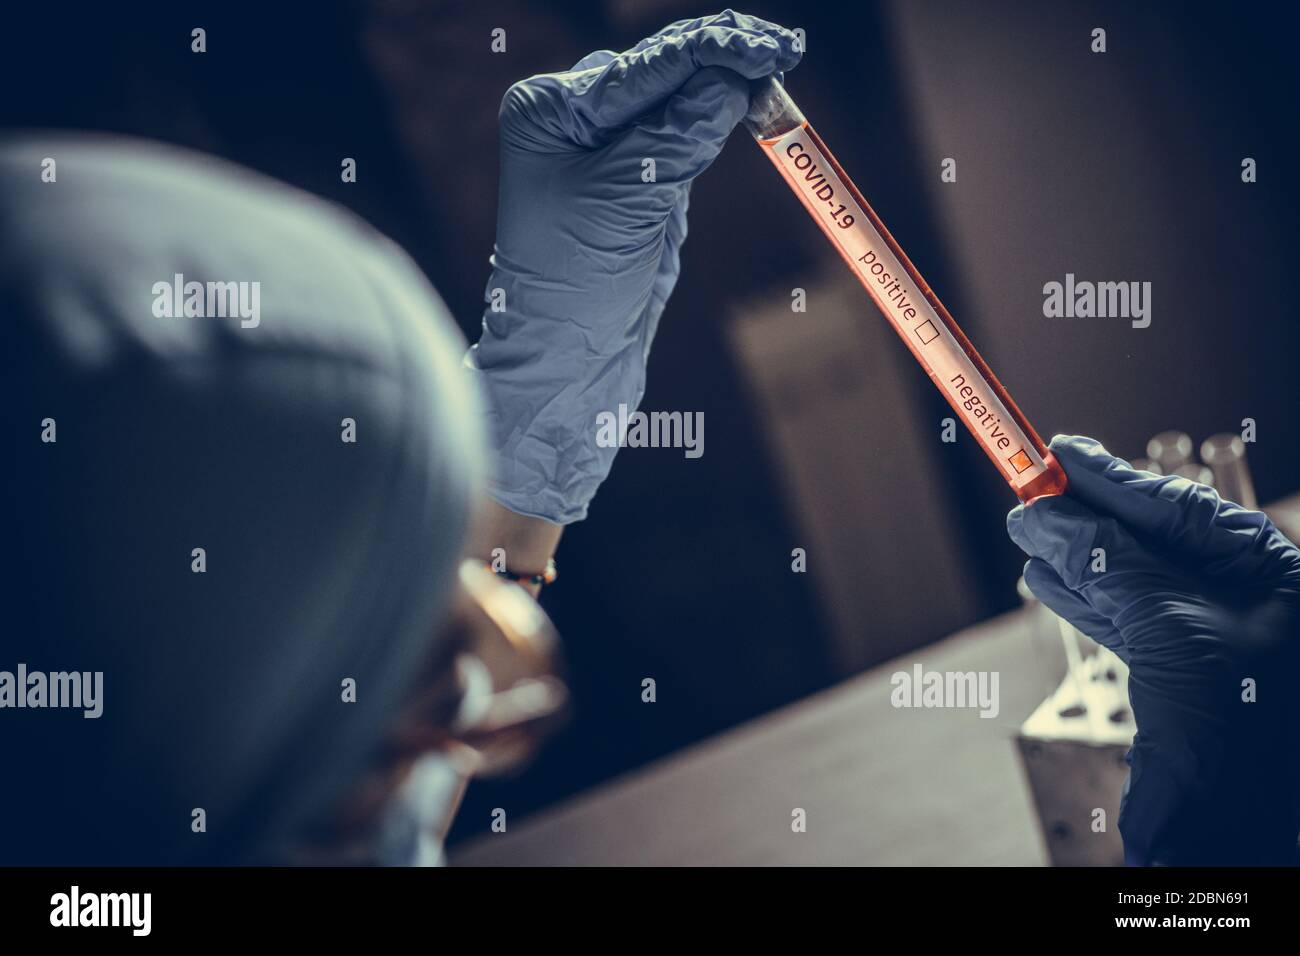 Conceptual photograph of a doctor's hands holding and looking at a test tube while with negative samples for the presence of coronavirus (COVID-19). Stock Photo